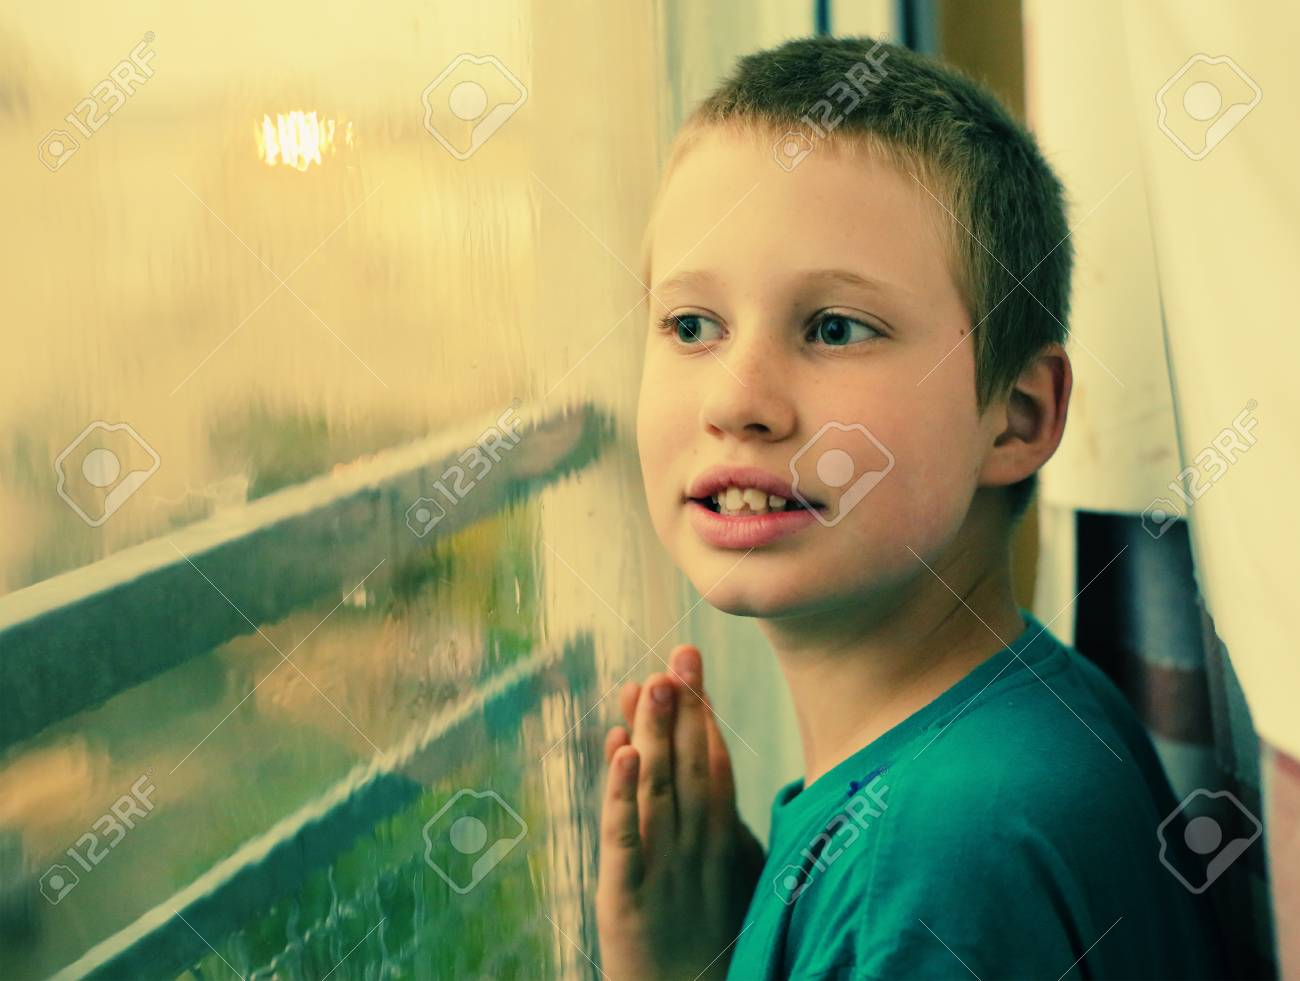 Cute 10 Year Old Autistic Boy Looking At The Rain Stock Photo